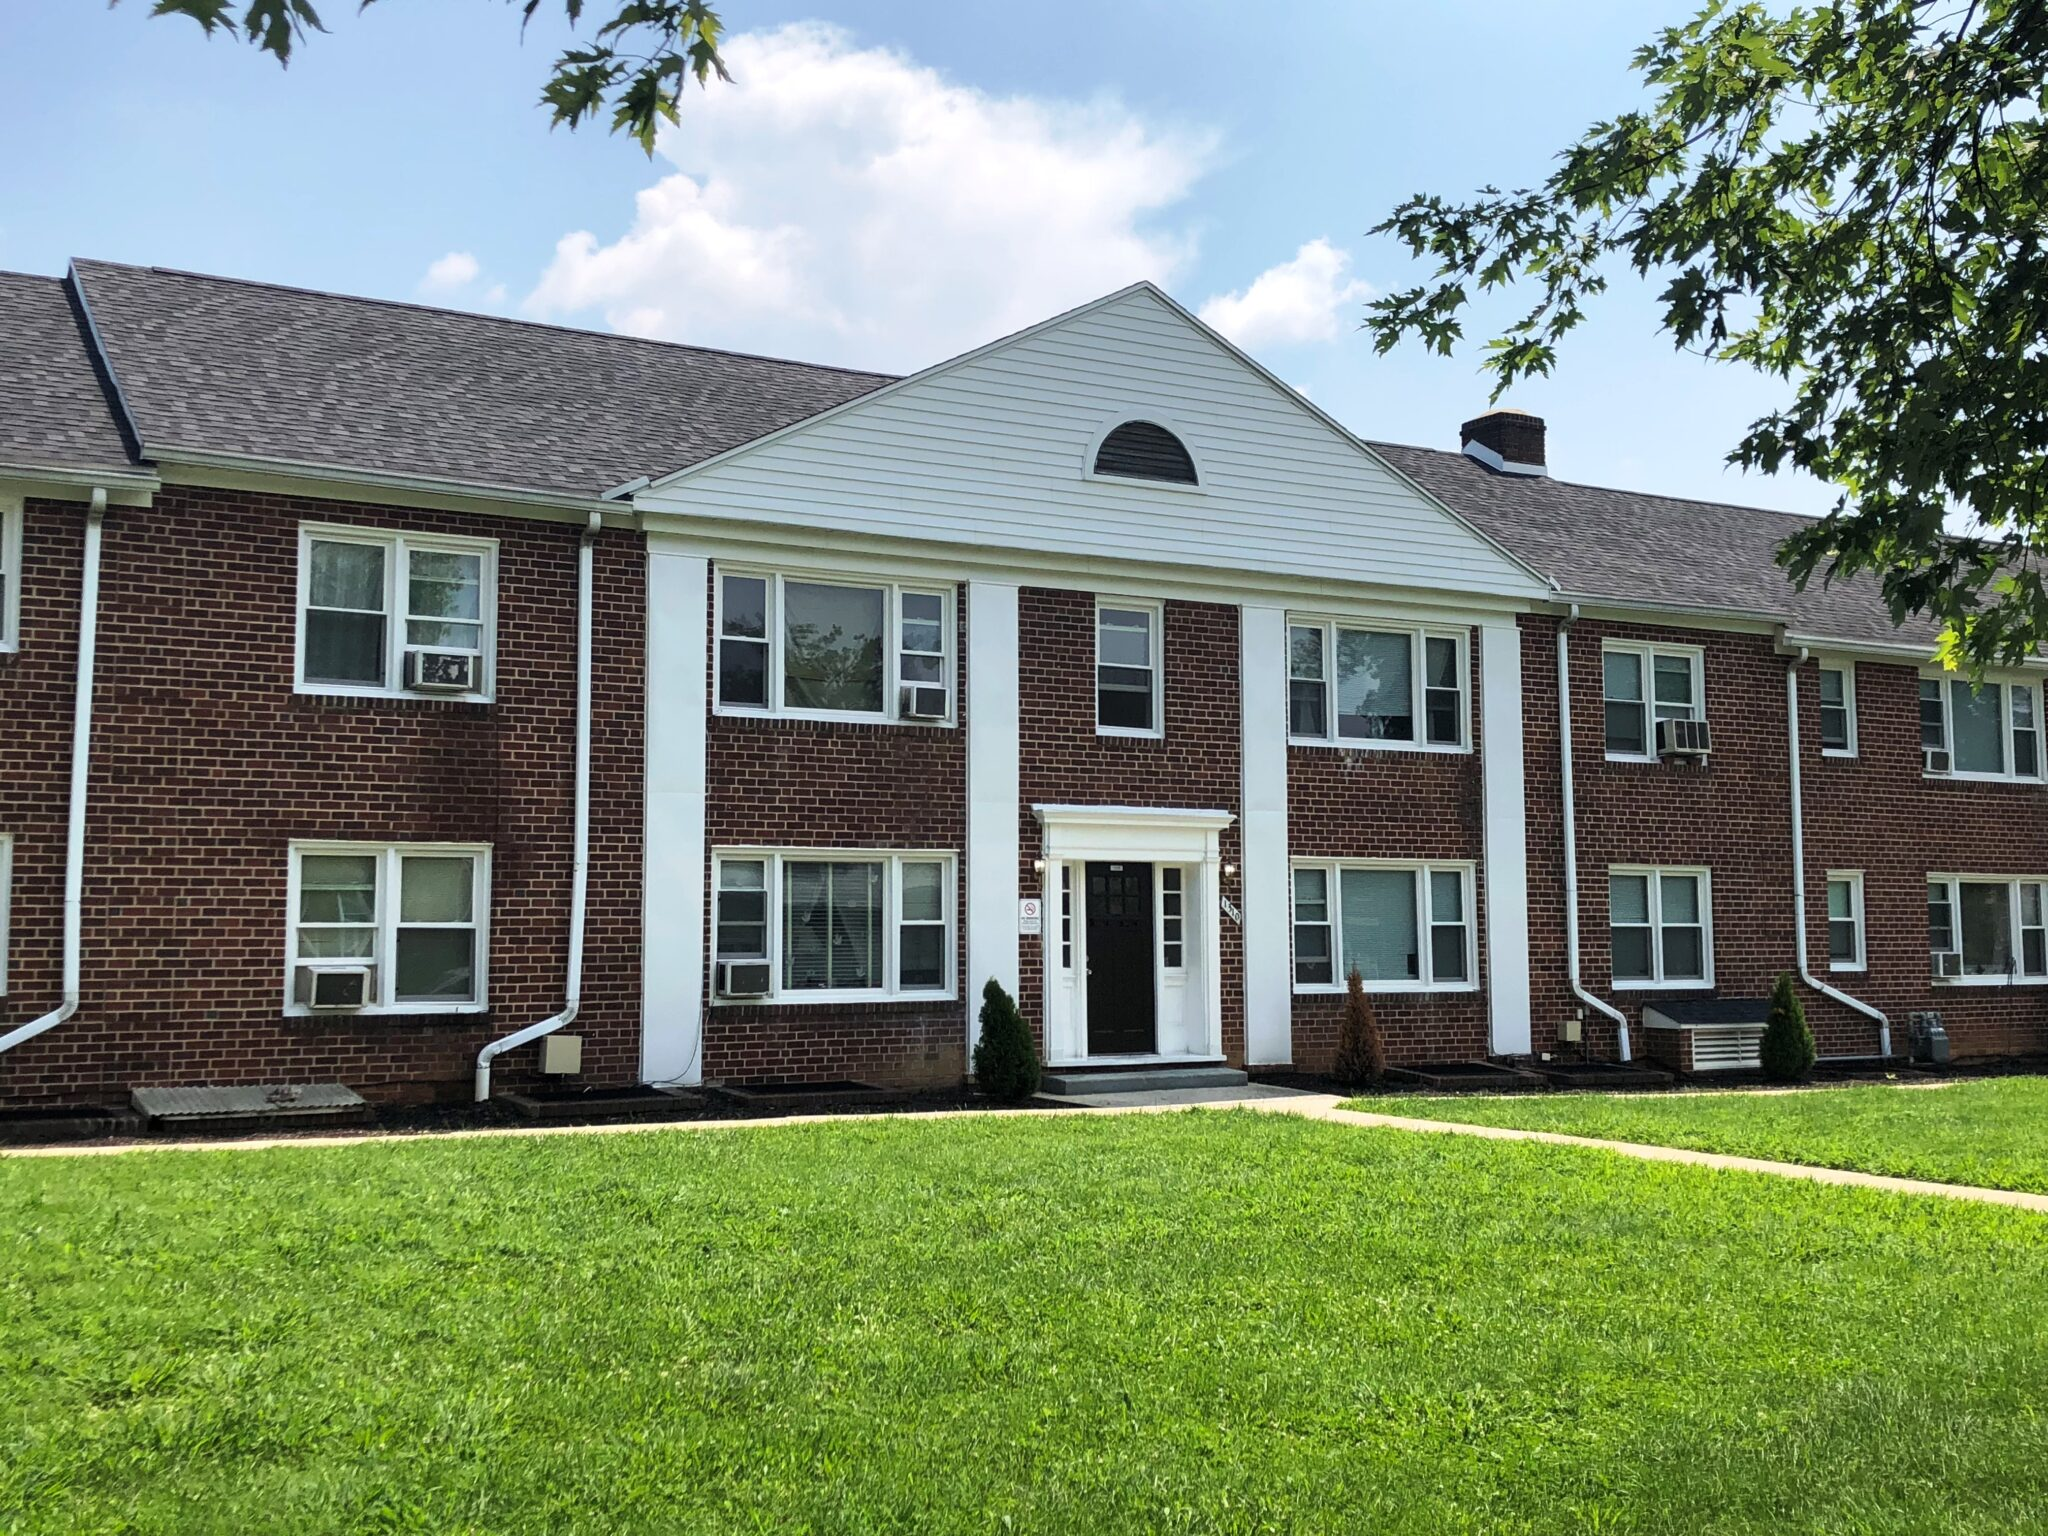 1306 Potomac Ave, Hagerstown, Md